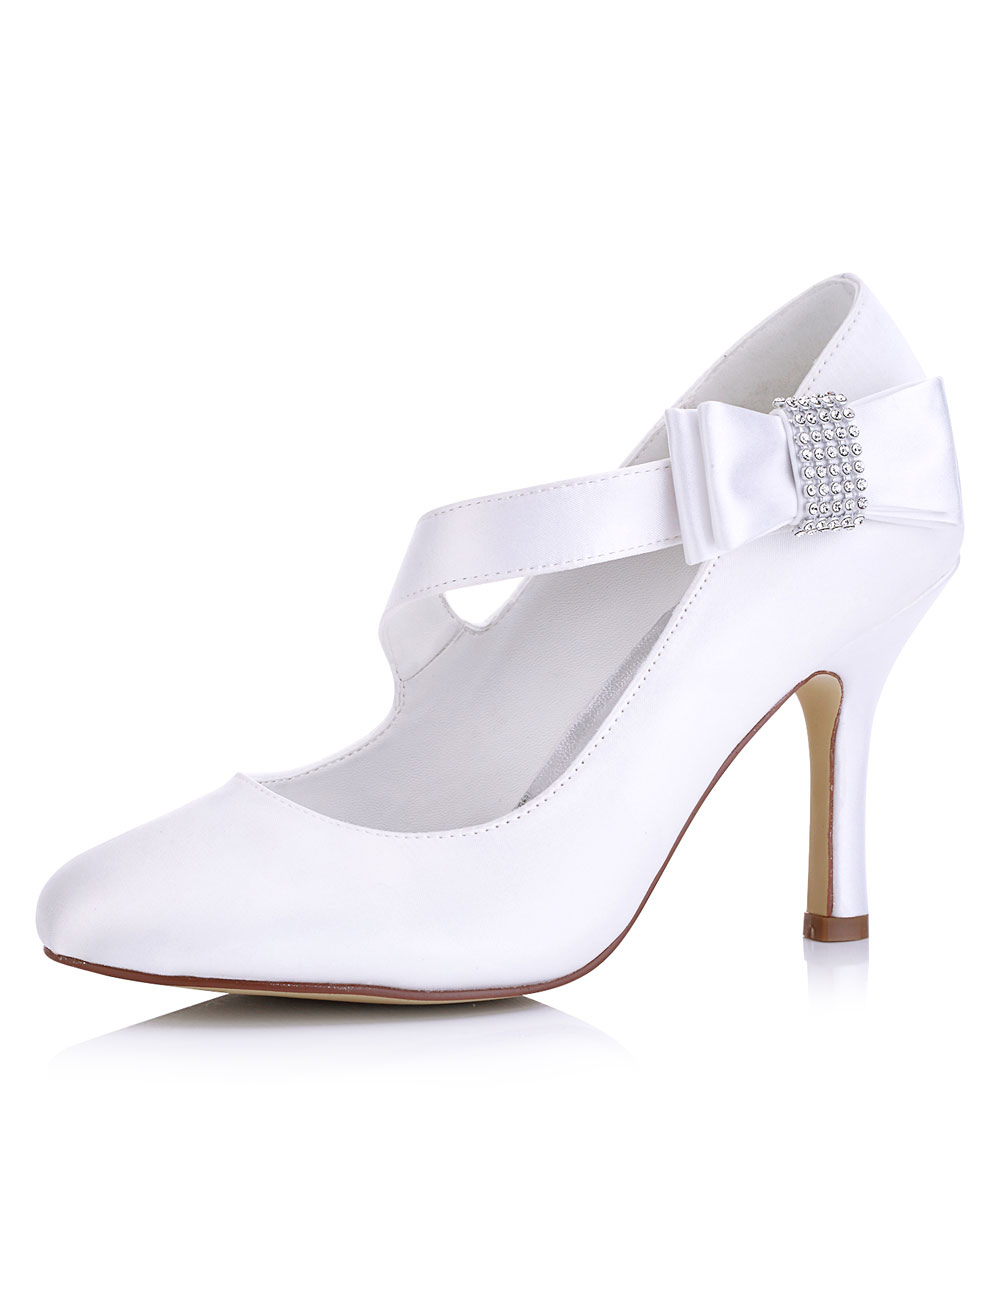 62d79ca55d504 Vintage Bridal Shoes White High Heel Mary Jane Pumps Round Toe Bow Wedding  Shoes